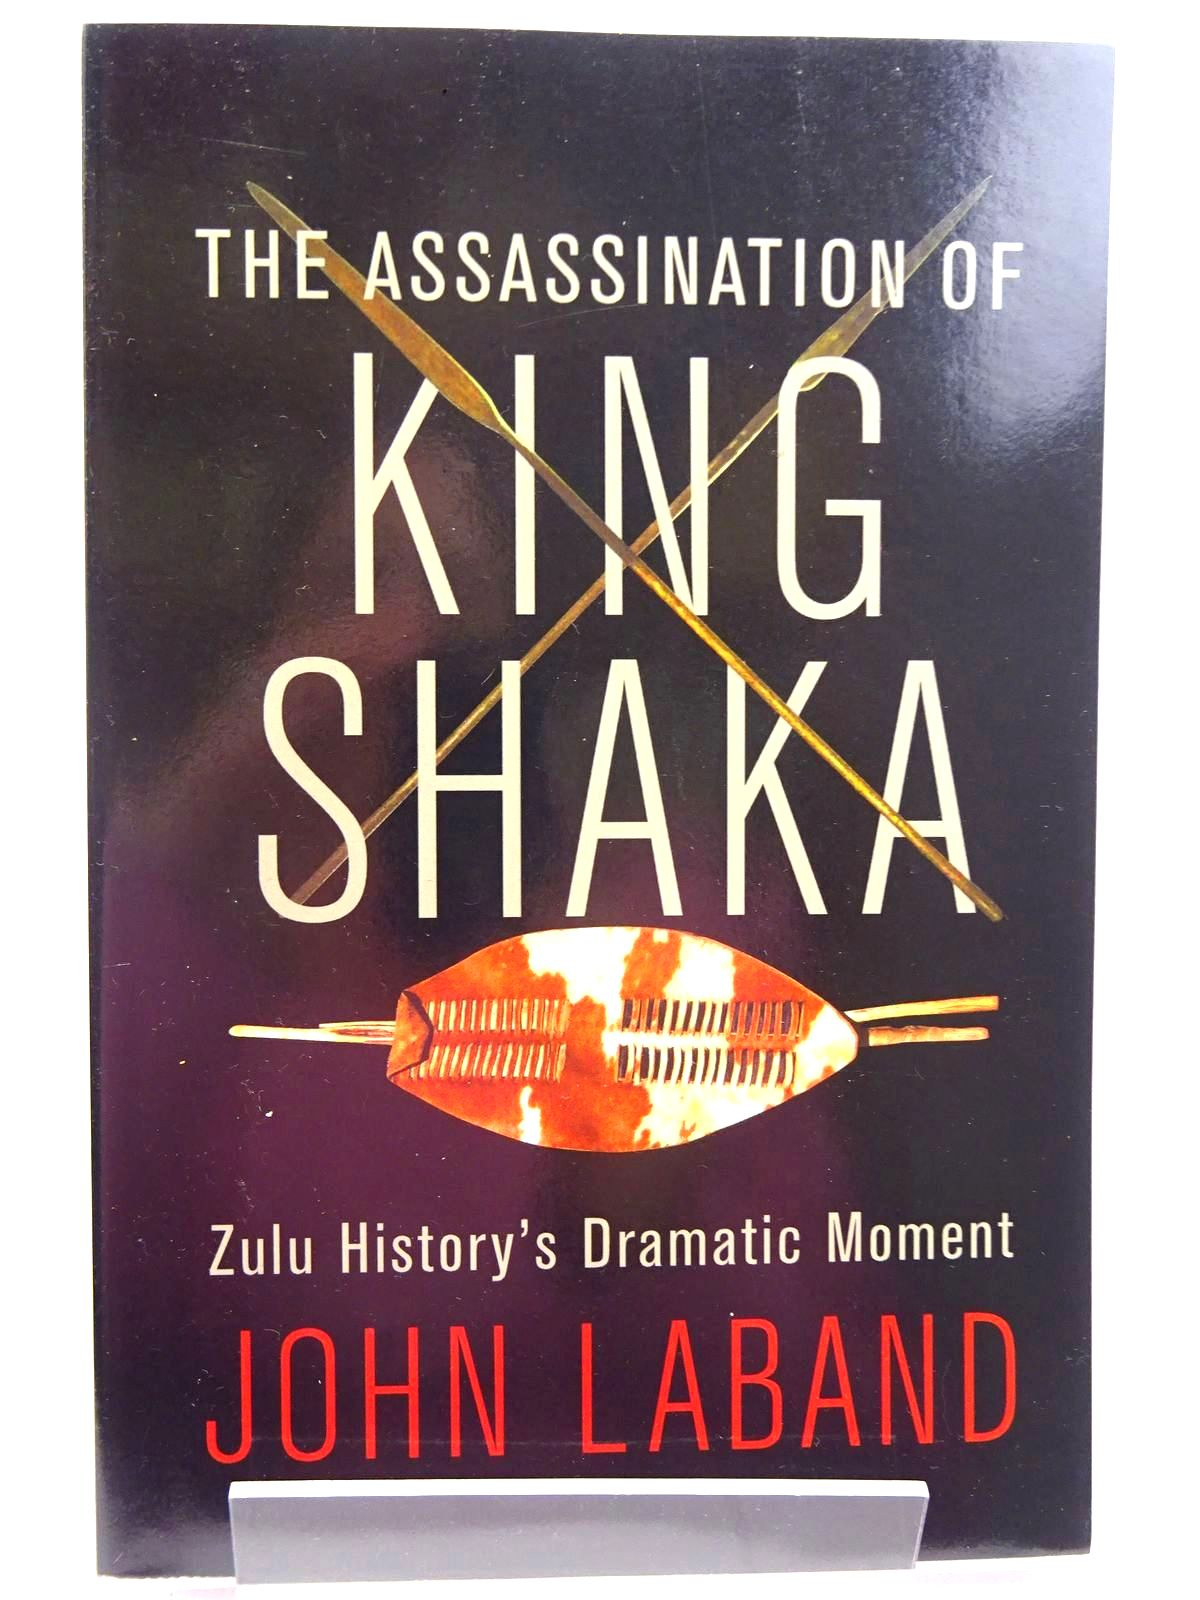 Photo of THE ASSASSINATION OF KING SHAKA ZULU HISTORY'S DRAMATIC MOMENT written by Laband, John published by Jonathan Ball Publishers (STOCK CODE: 2131026)  for sale by Stella & Rose's Books